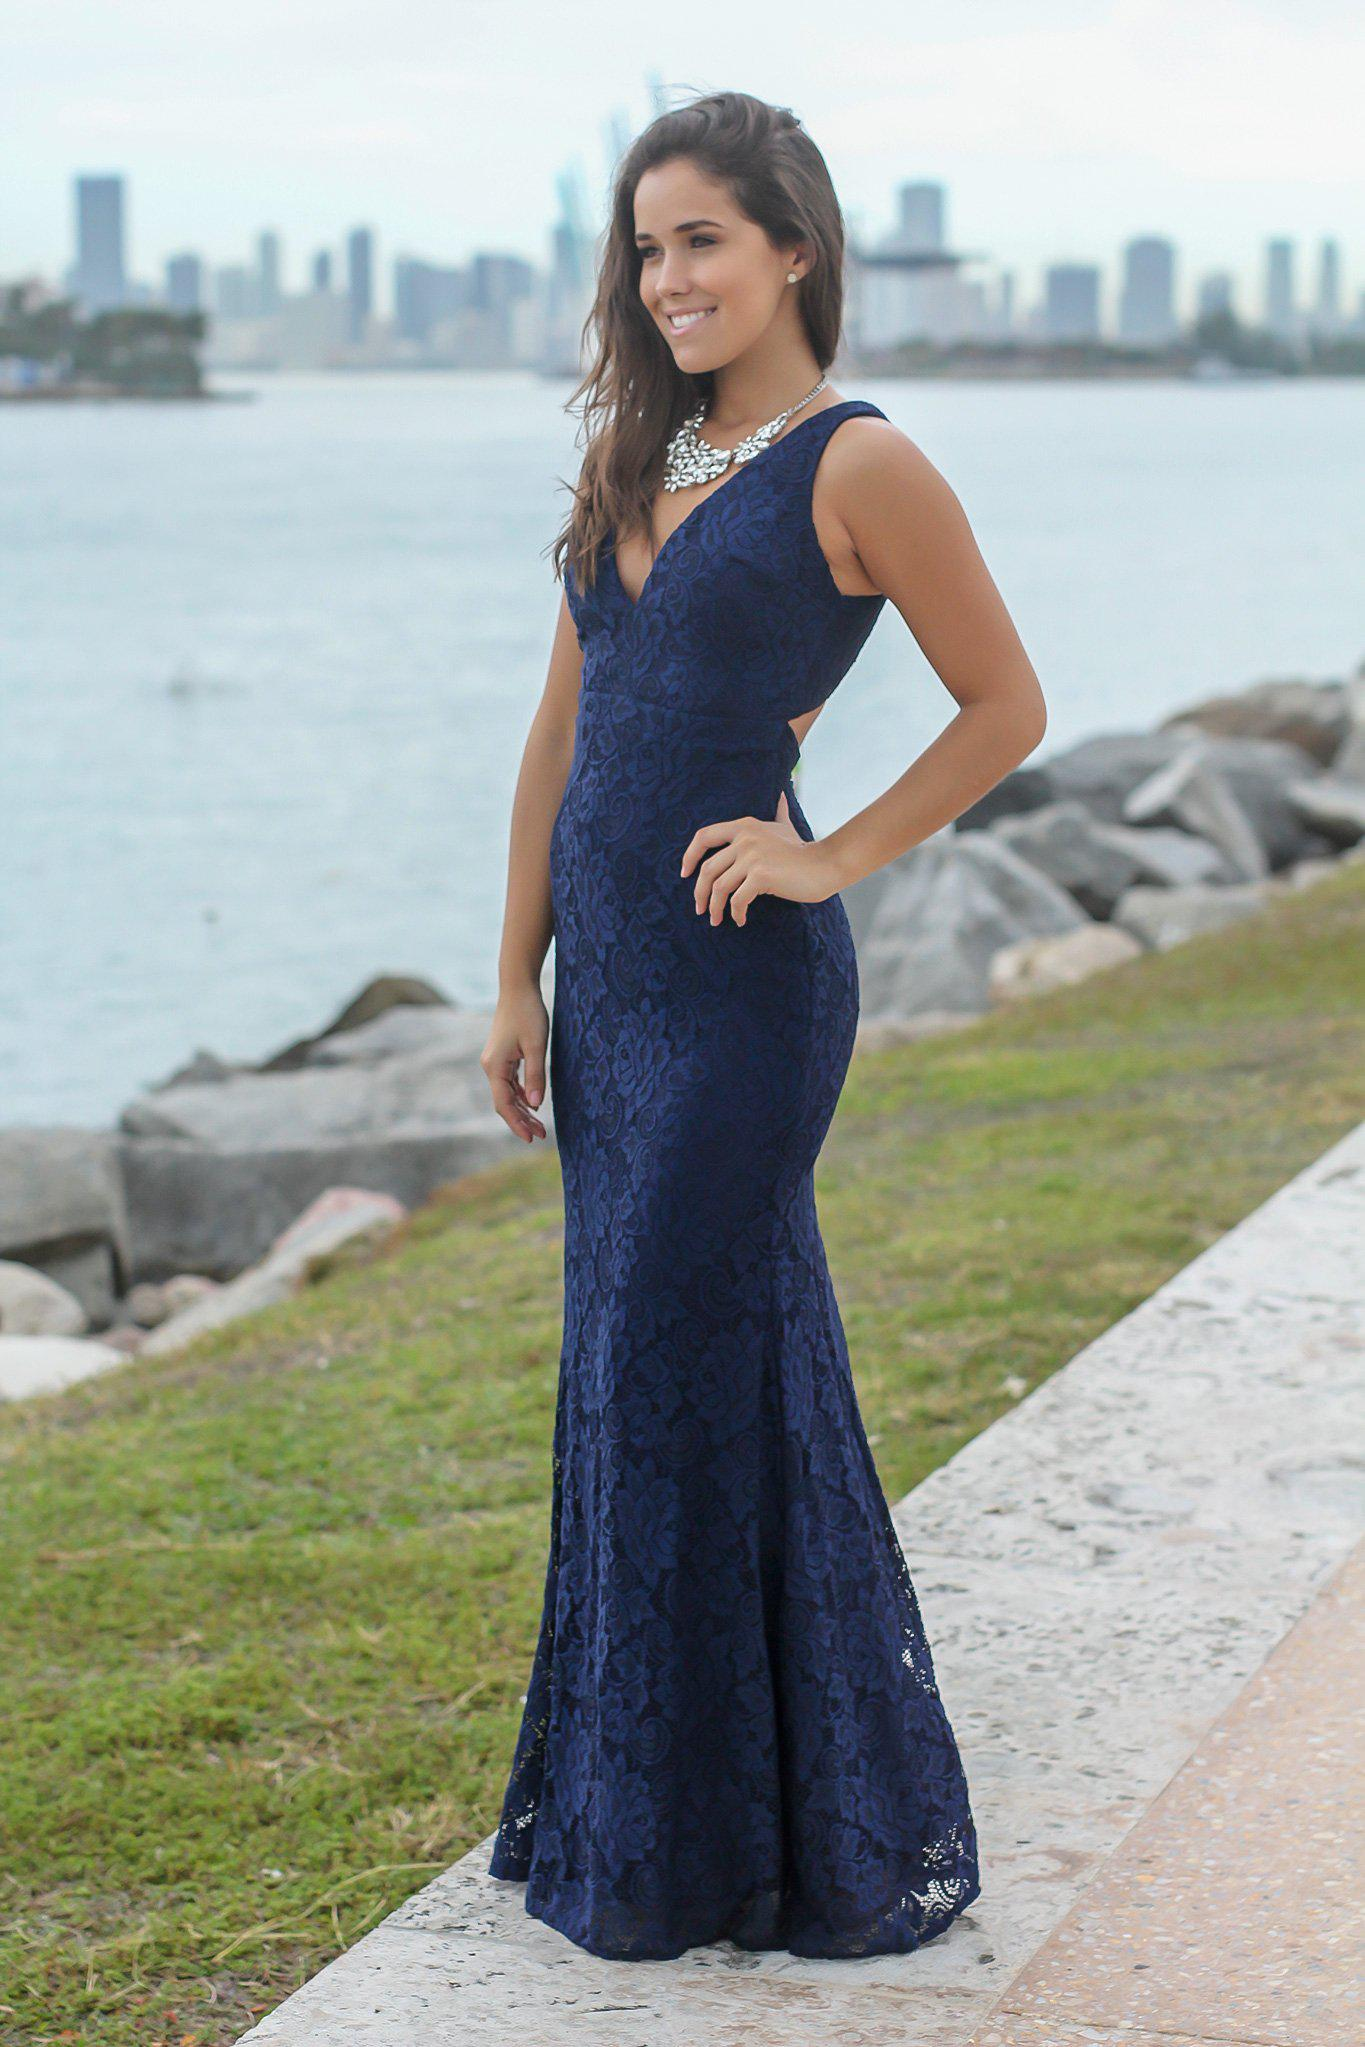 Navy lace maxi dress with open back bridesmaid dresses saved navy dresses lace dresses maxi dresses bridesmaid dresses ombrellifo Images